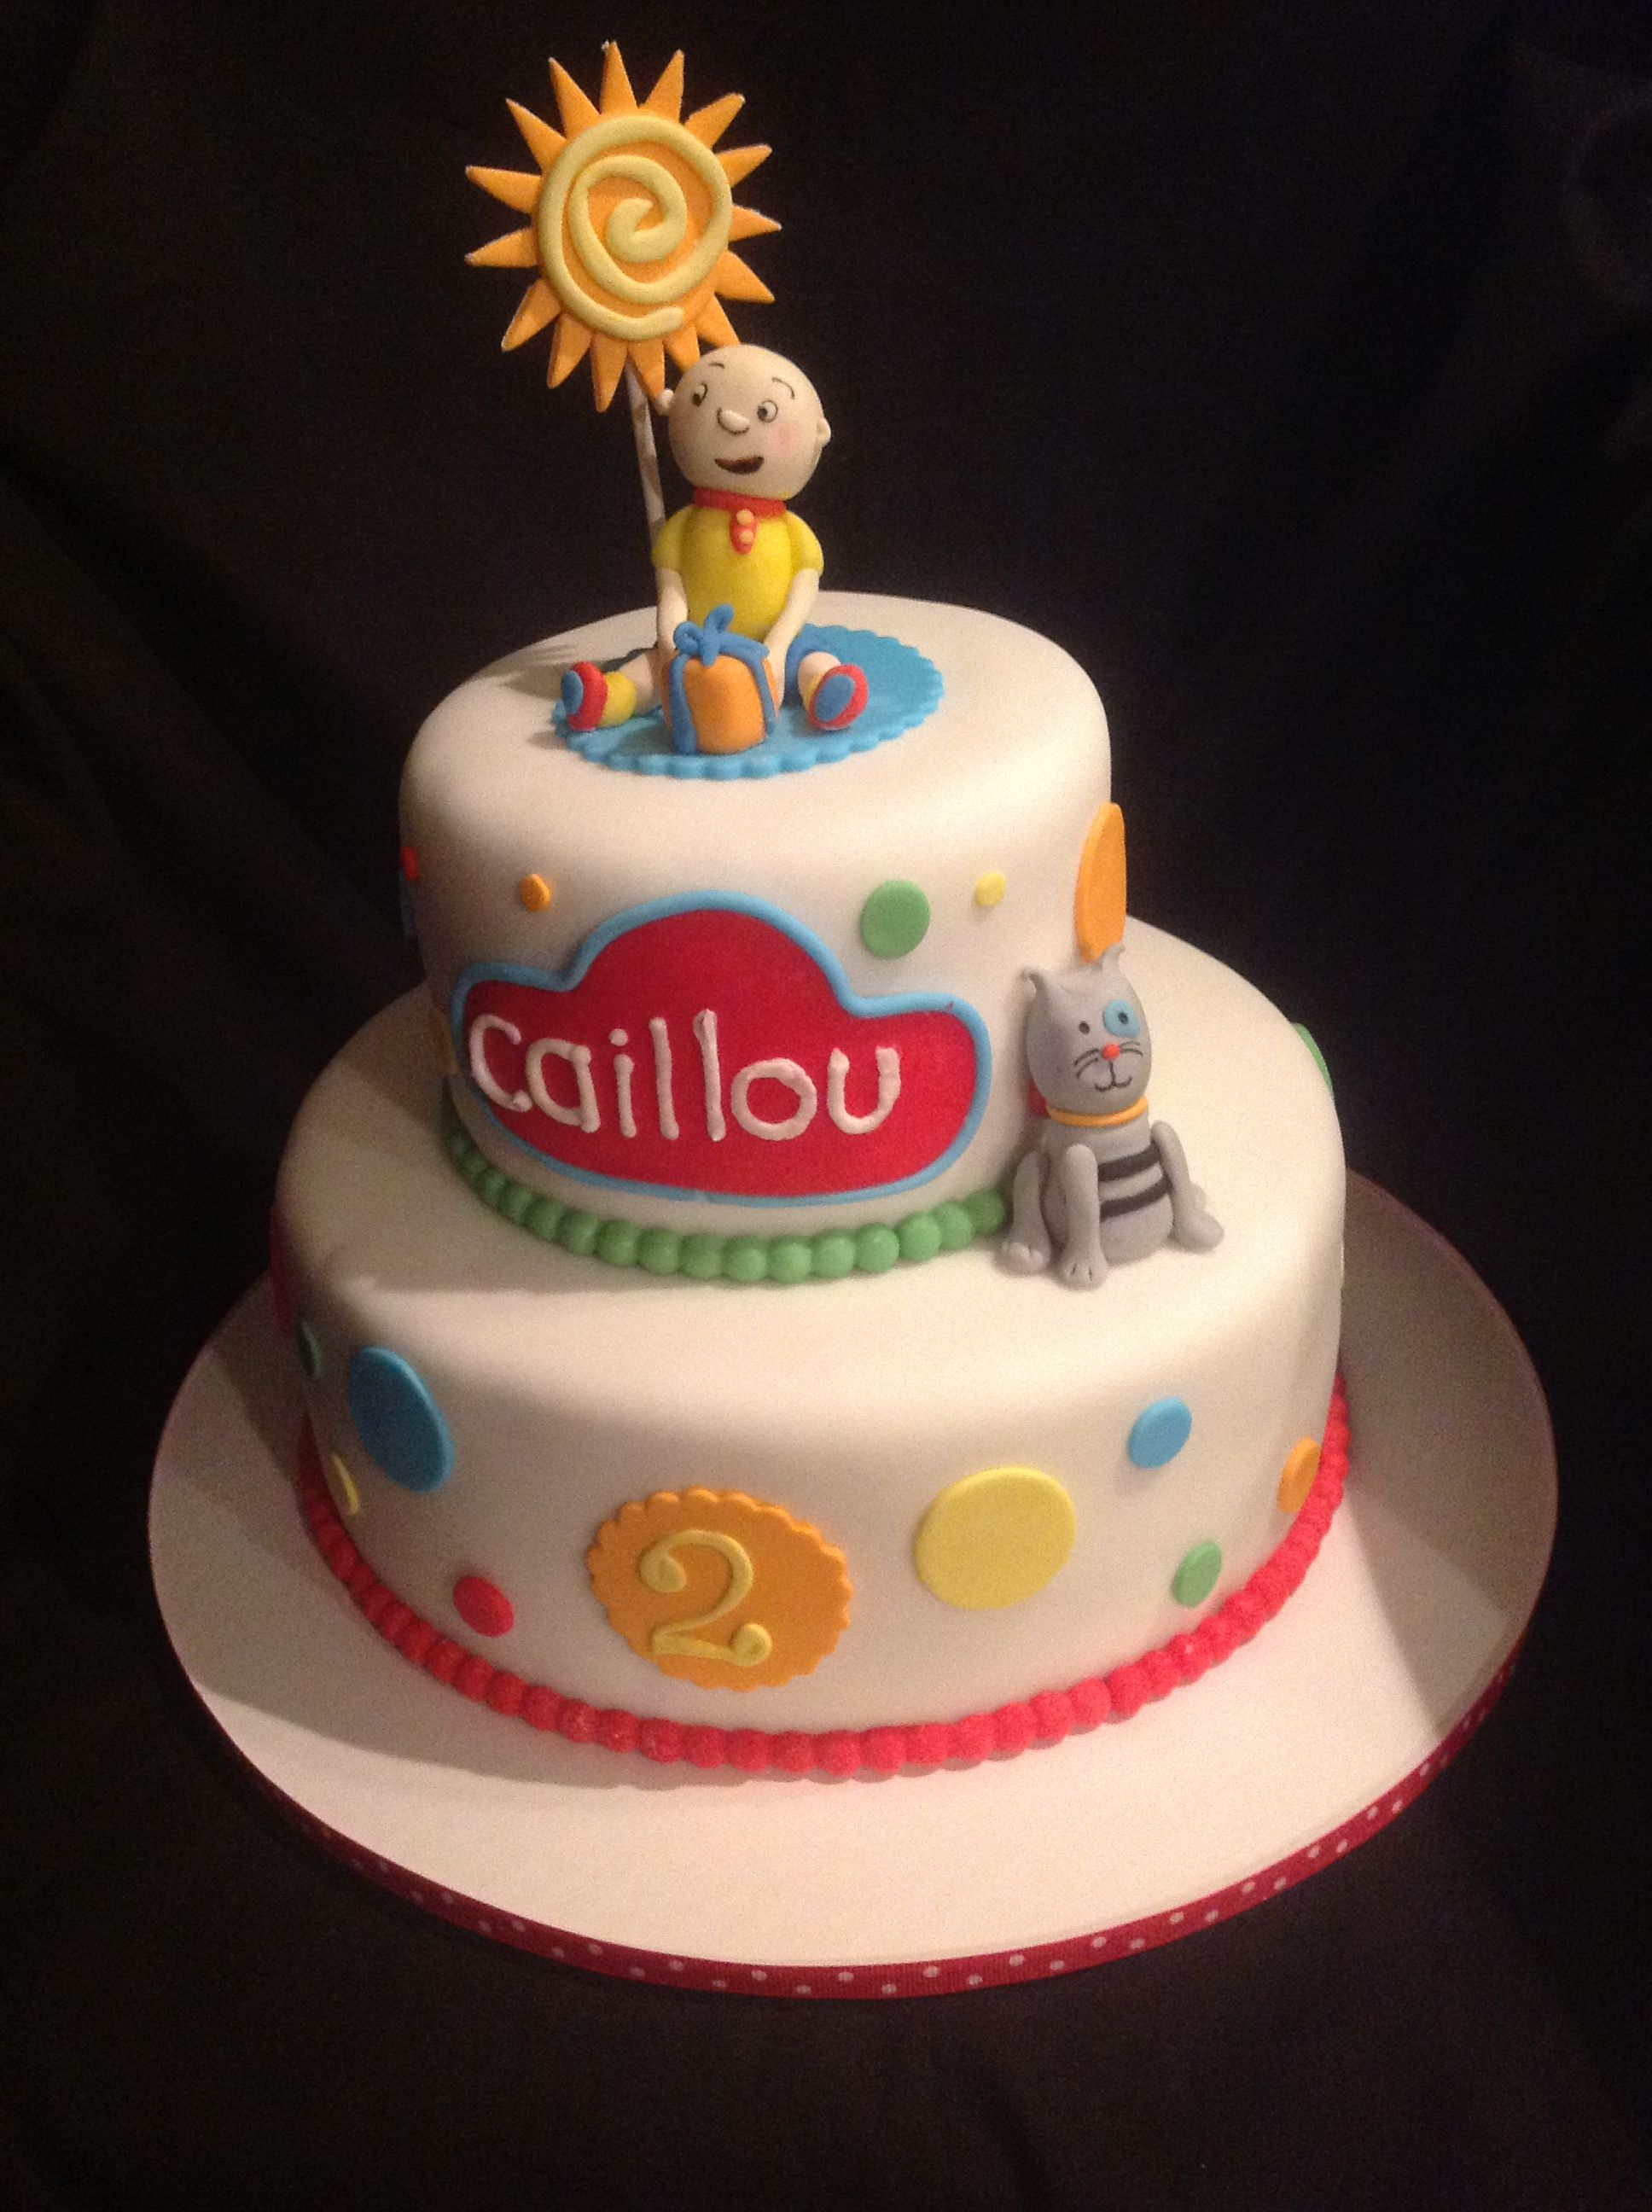 Caillou Cake Amy Hart Sweethart Cakes